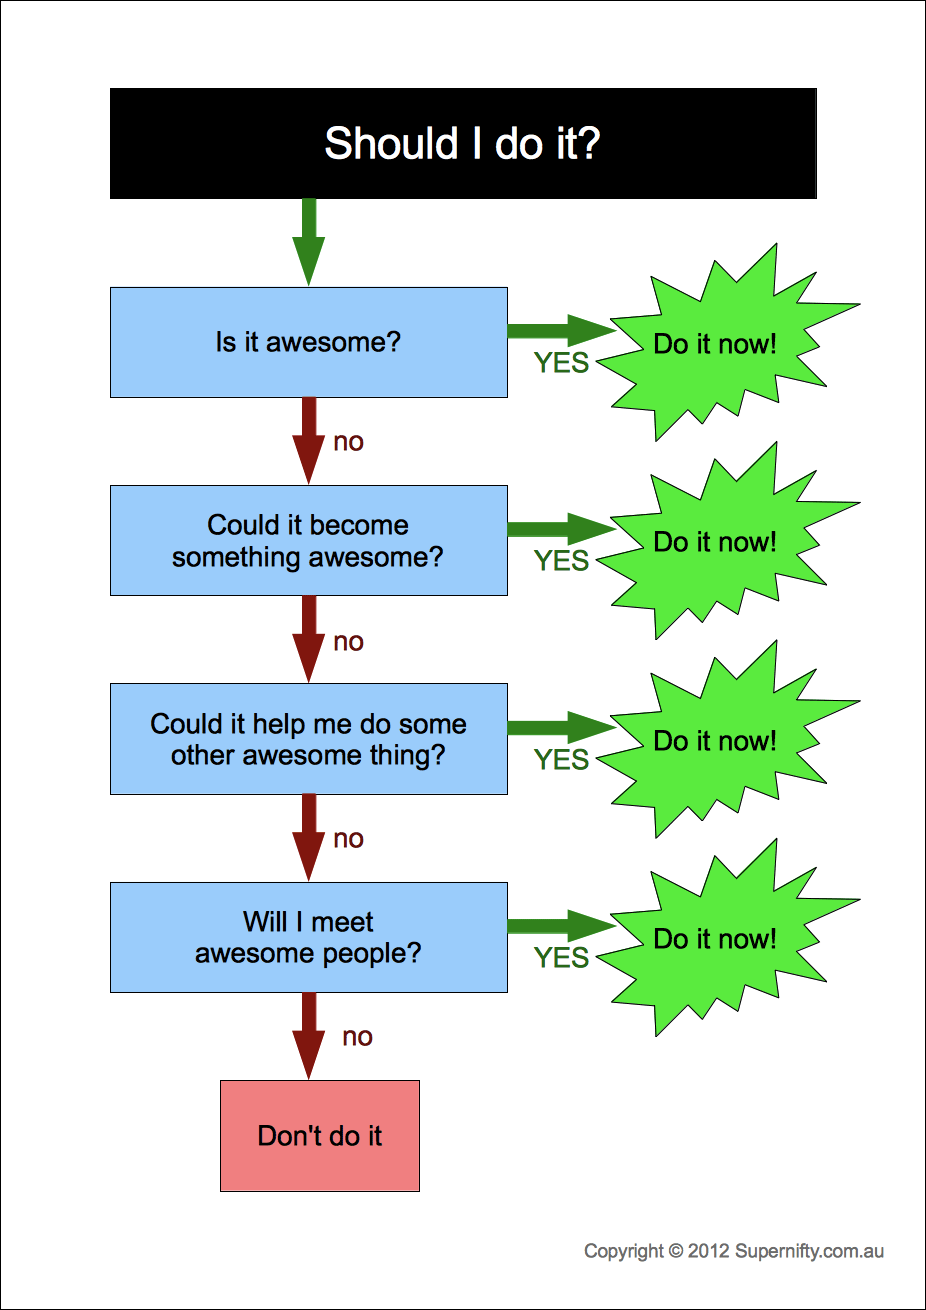 Should I do it? Decision flowchart